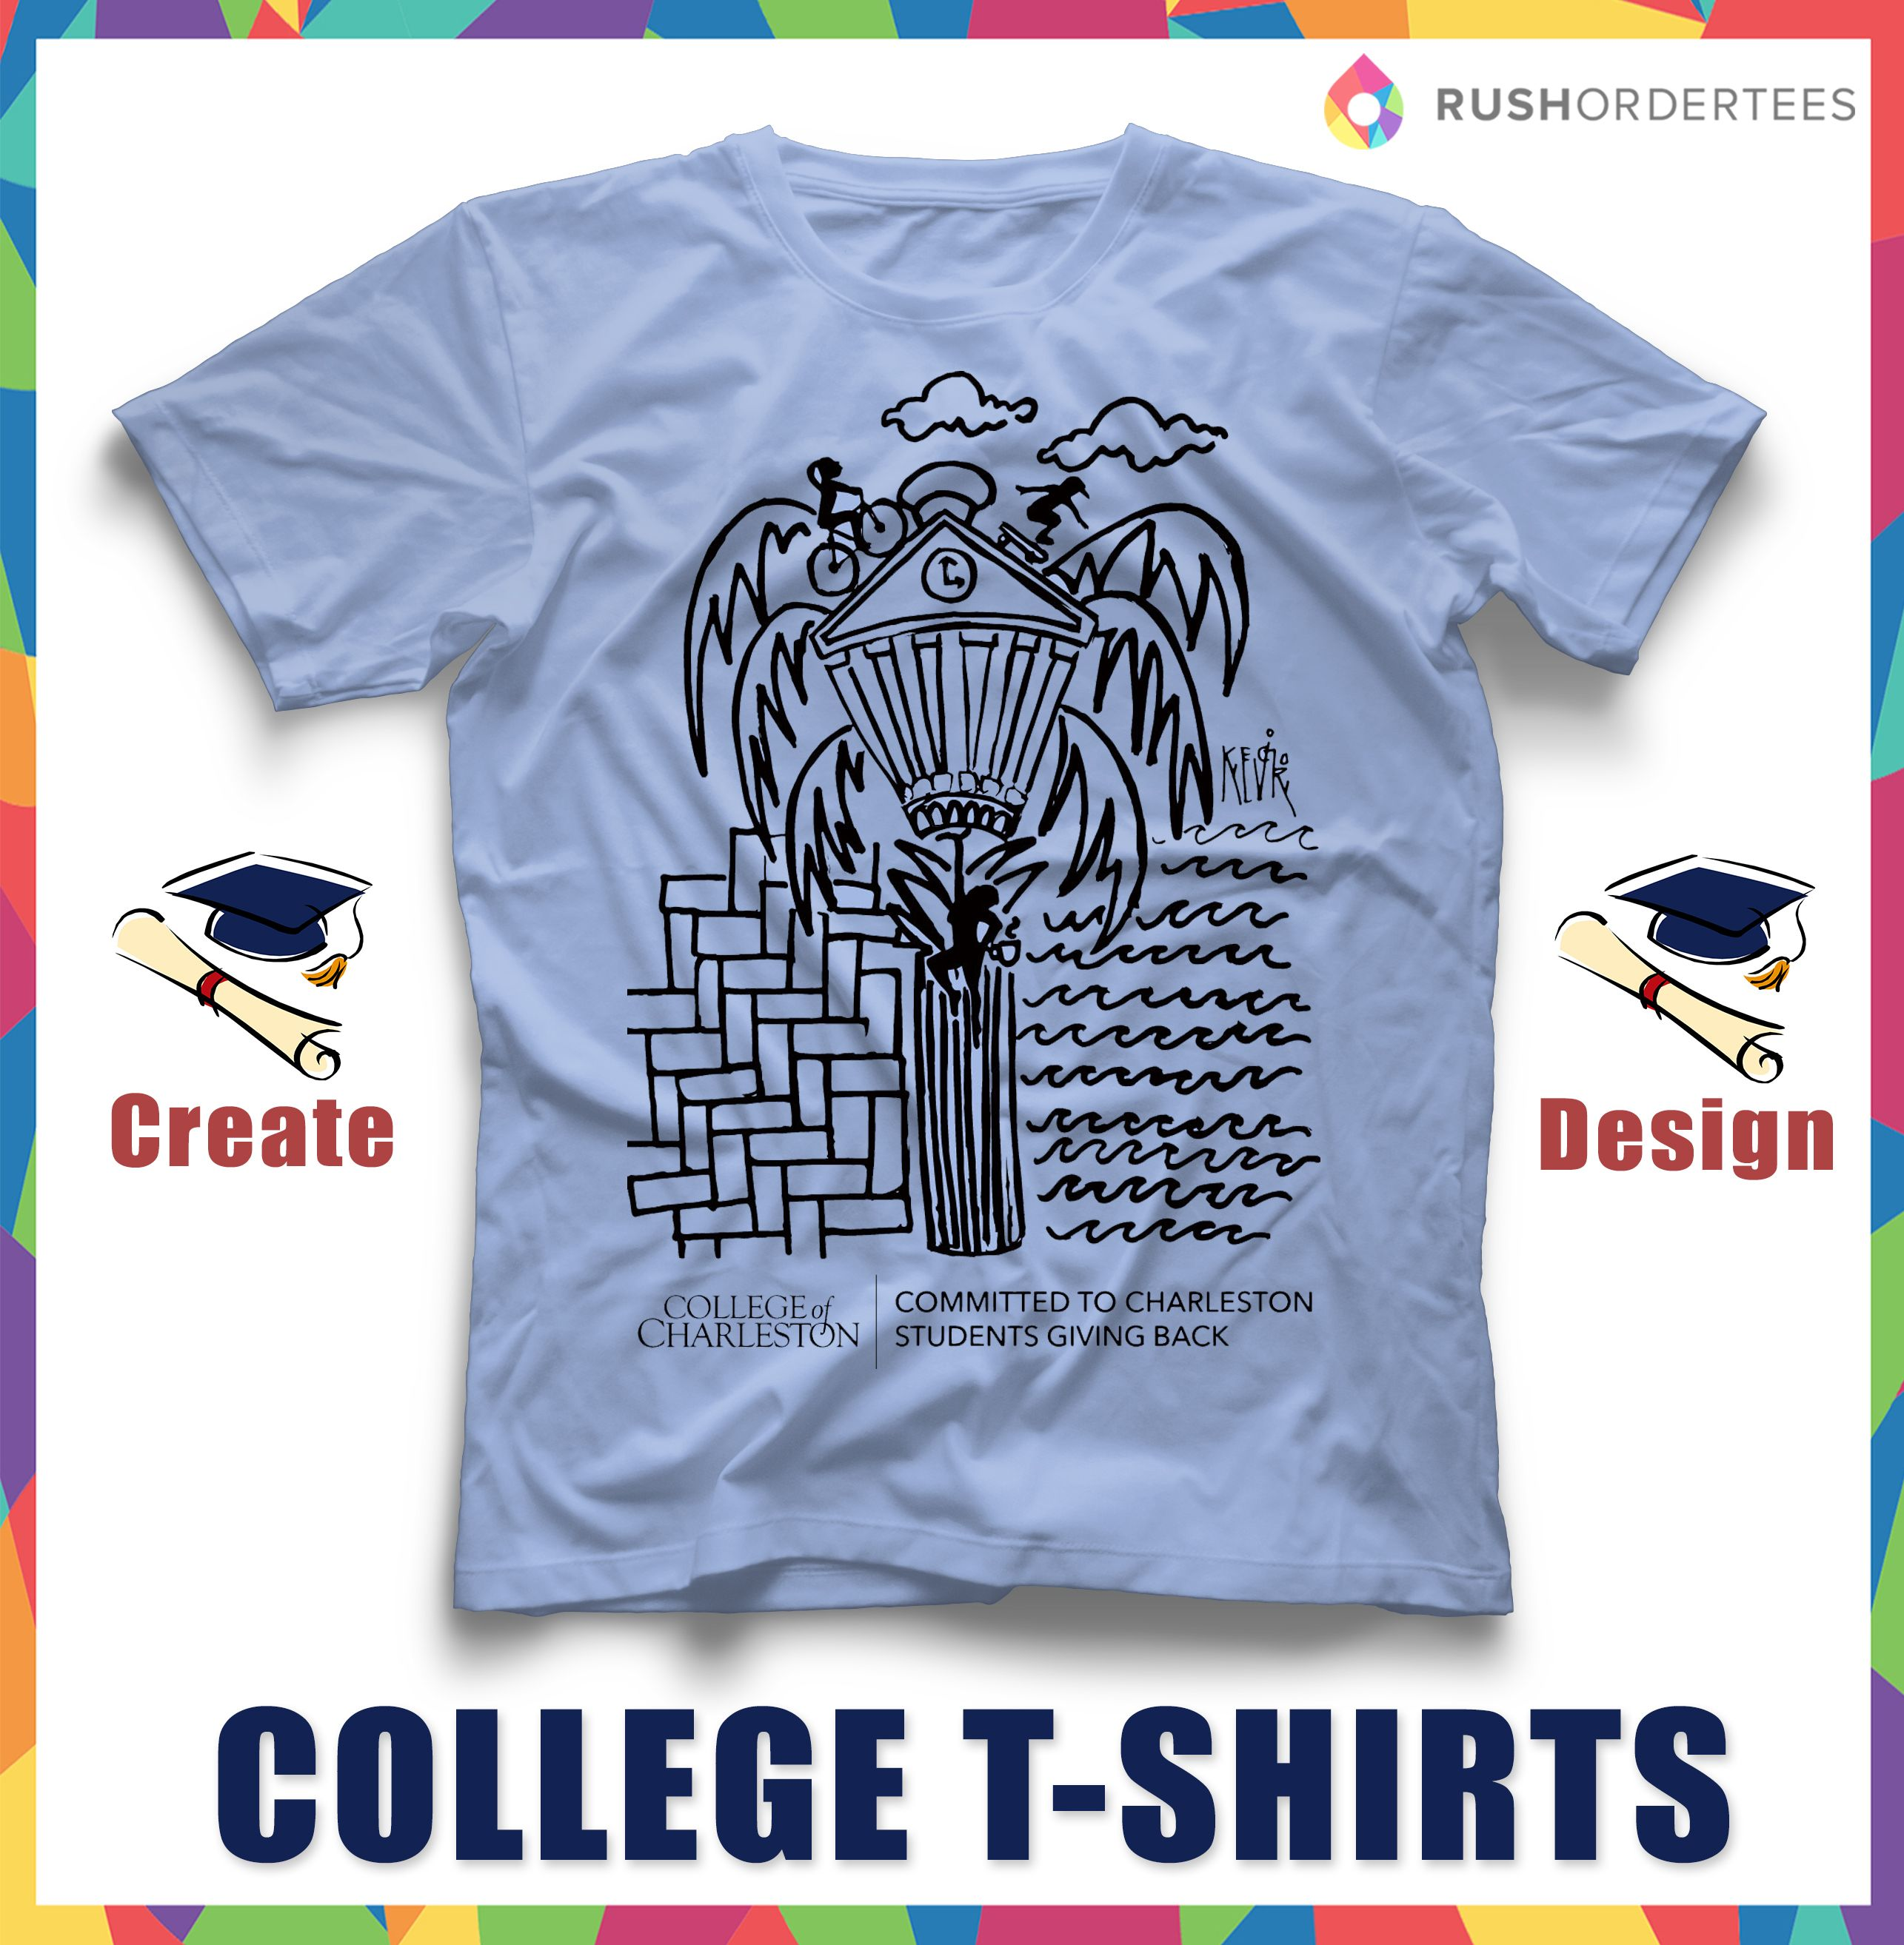 find more college tshirt designs in our quotcollege tshirt